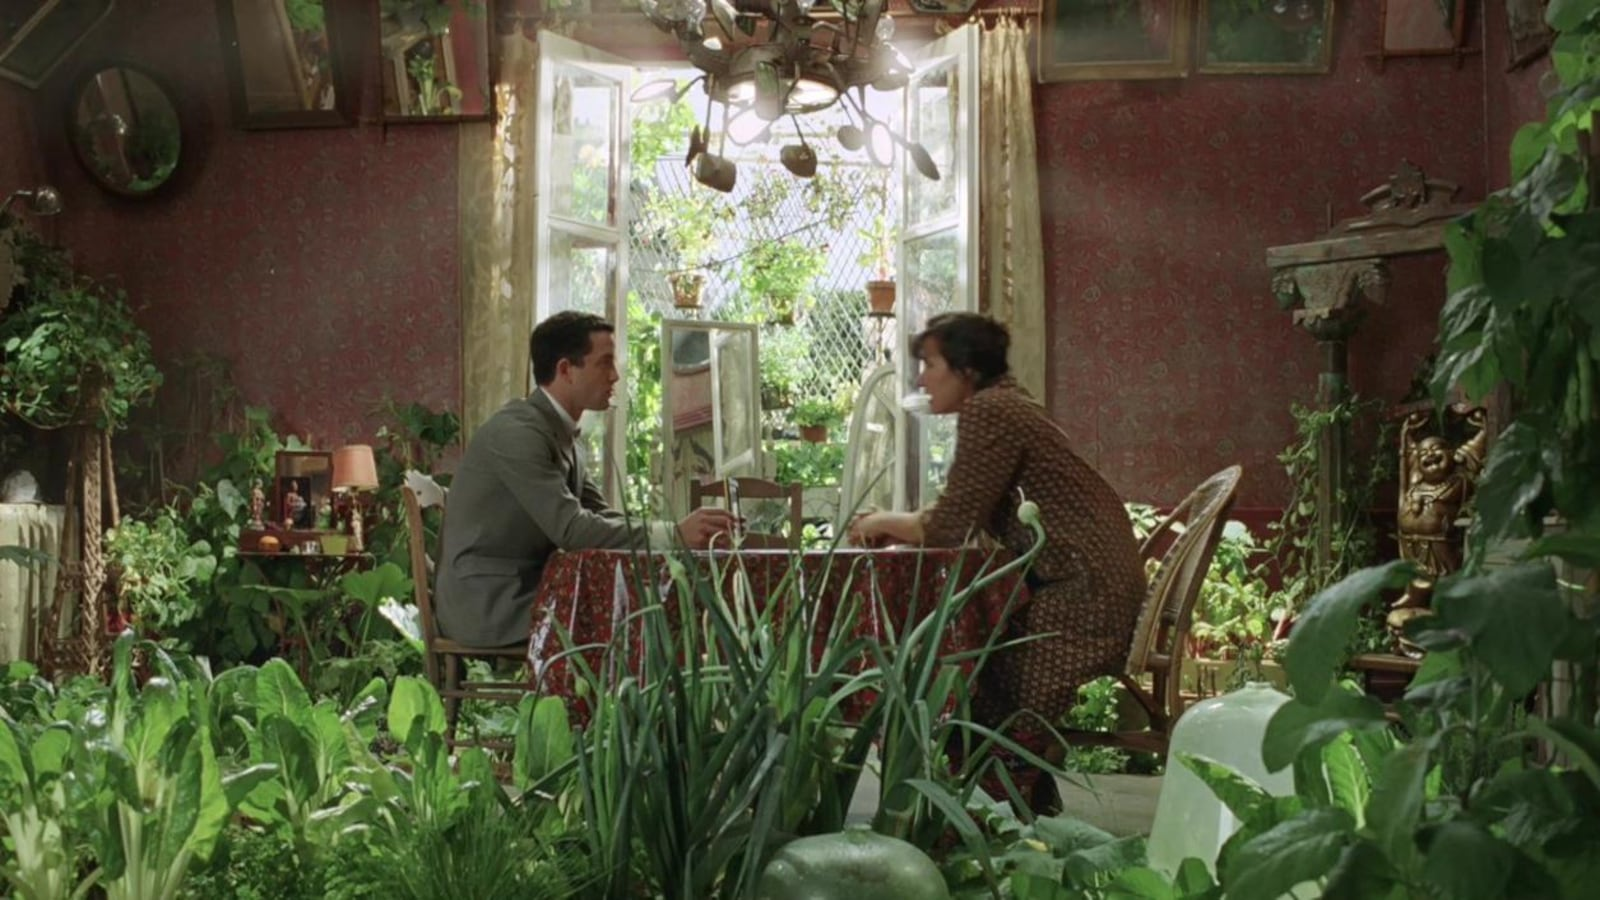 A man and a woman sitting around a table in an apartment filled with green plants.